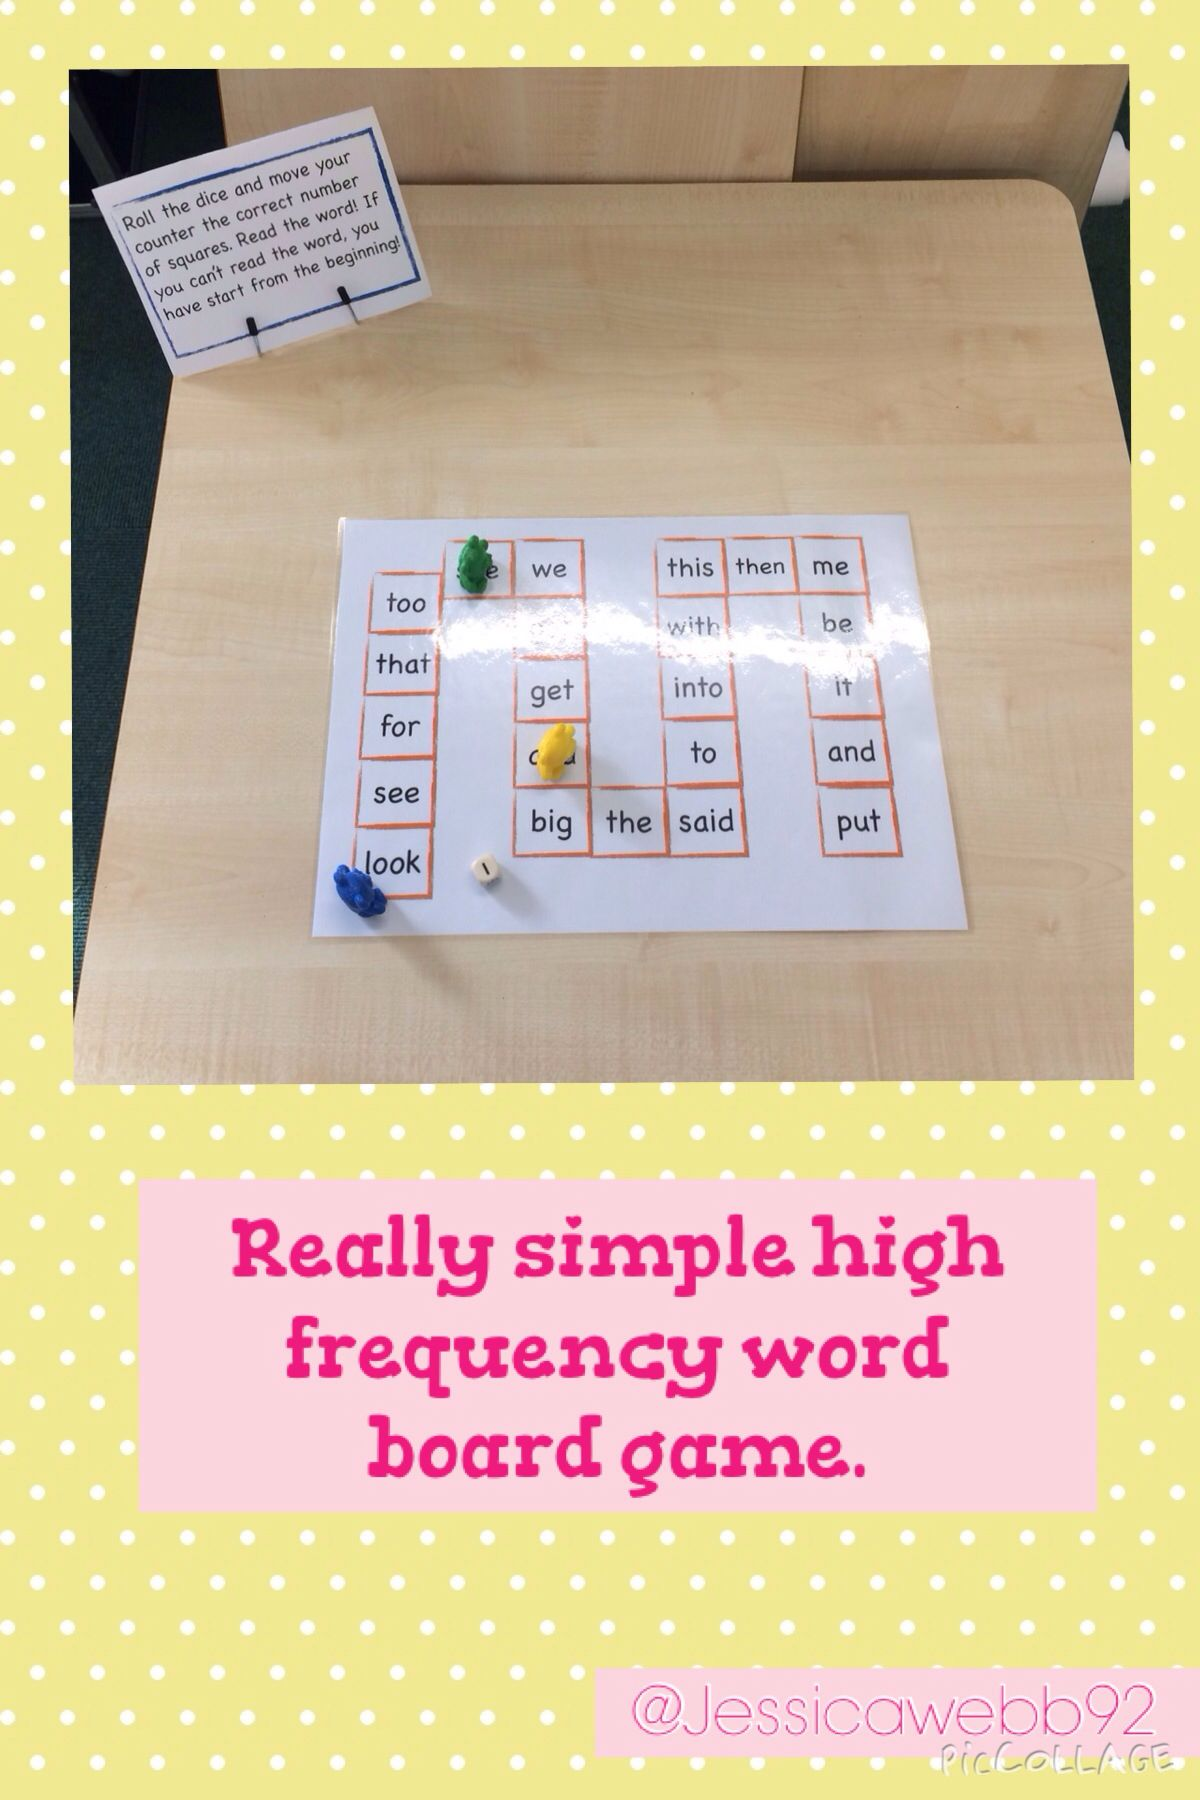 High frequency word board game. Roll the dice, move the